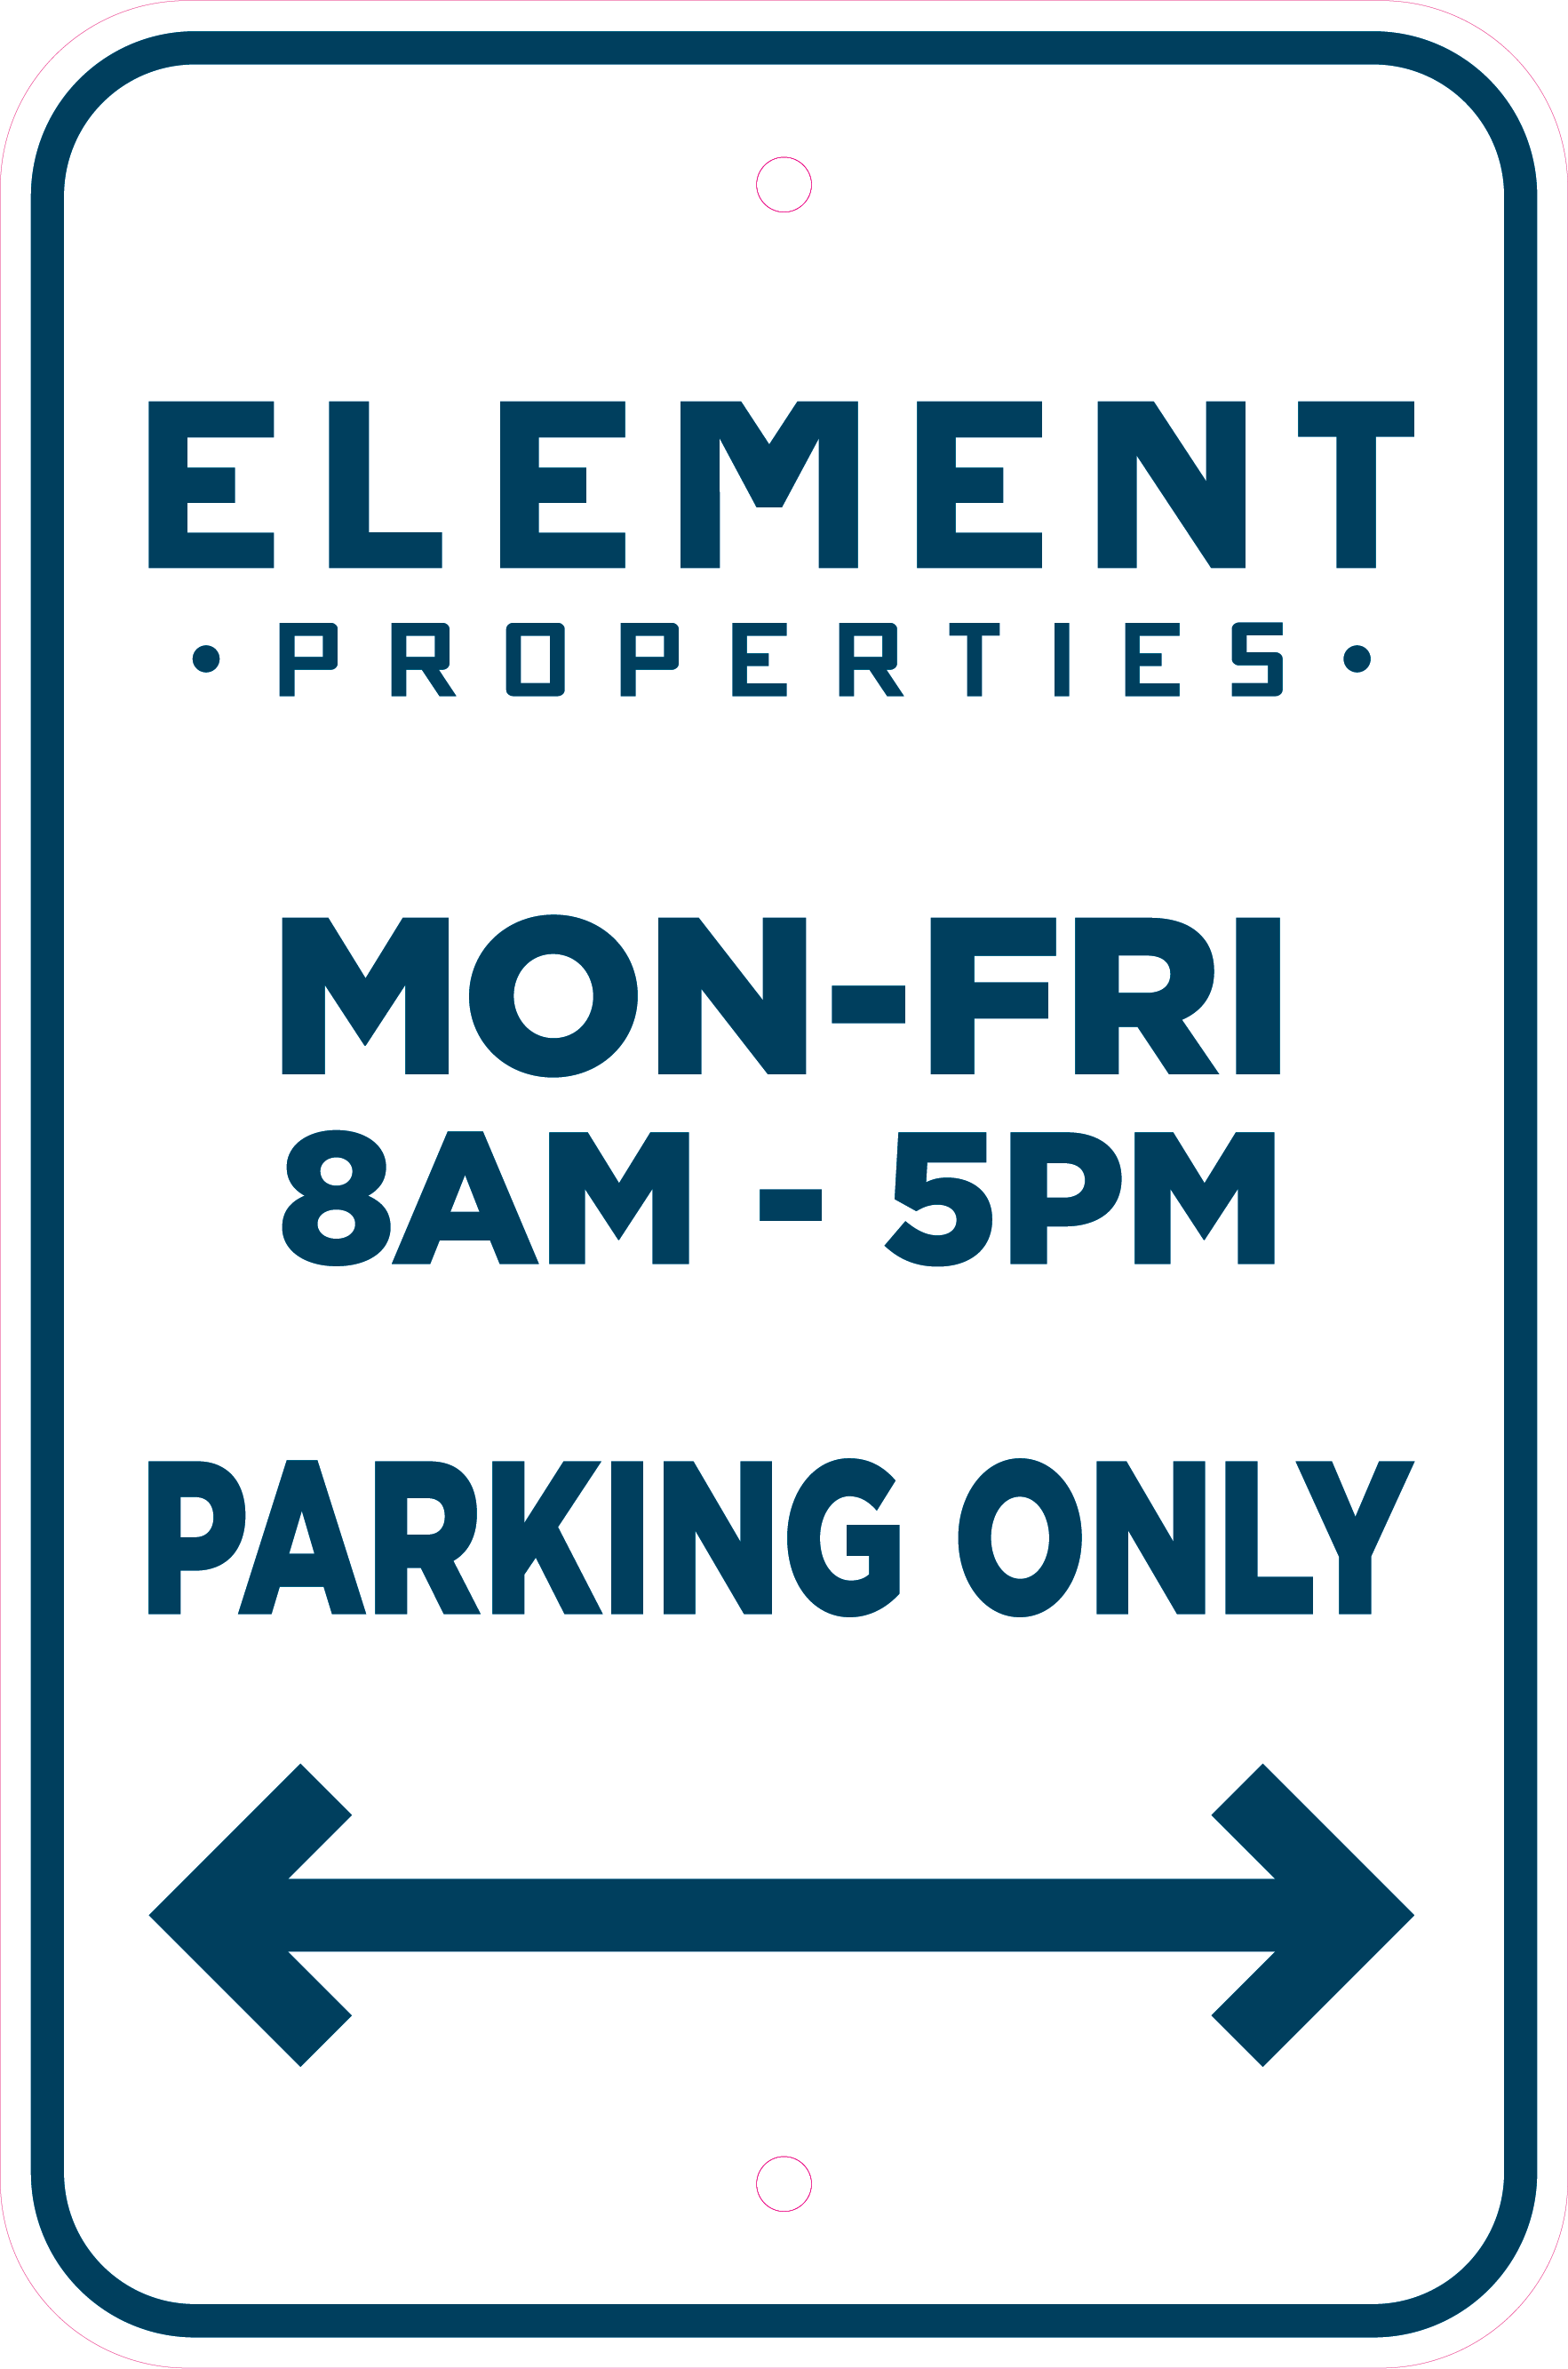 Element Properties Emily Inv. 93775 Item A 18x12 PARKING SIGNS Rev2 Proof 05-07-19-01.png